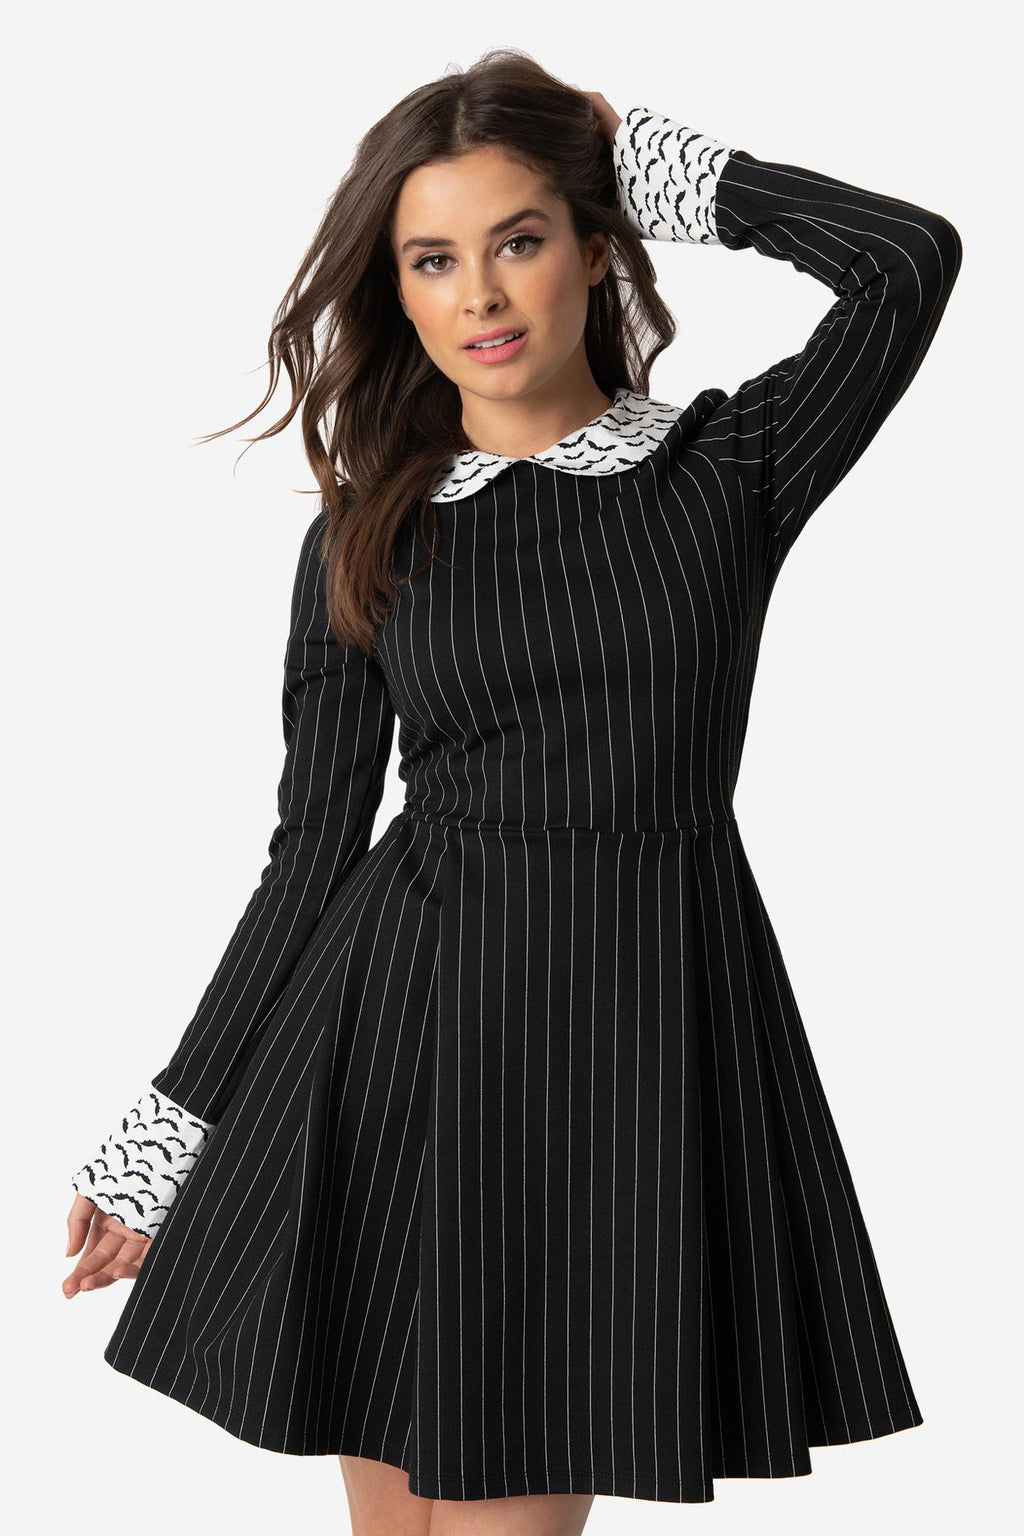 Black & White Pinstripe Bat Print Fit & Flare Dress by Smak Parlour